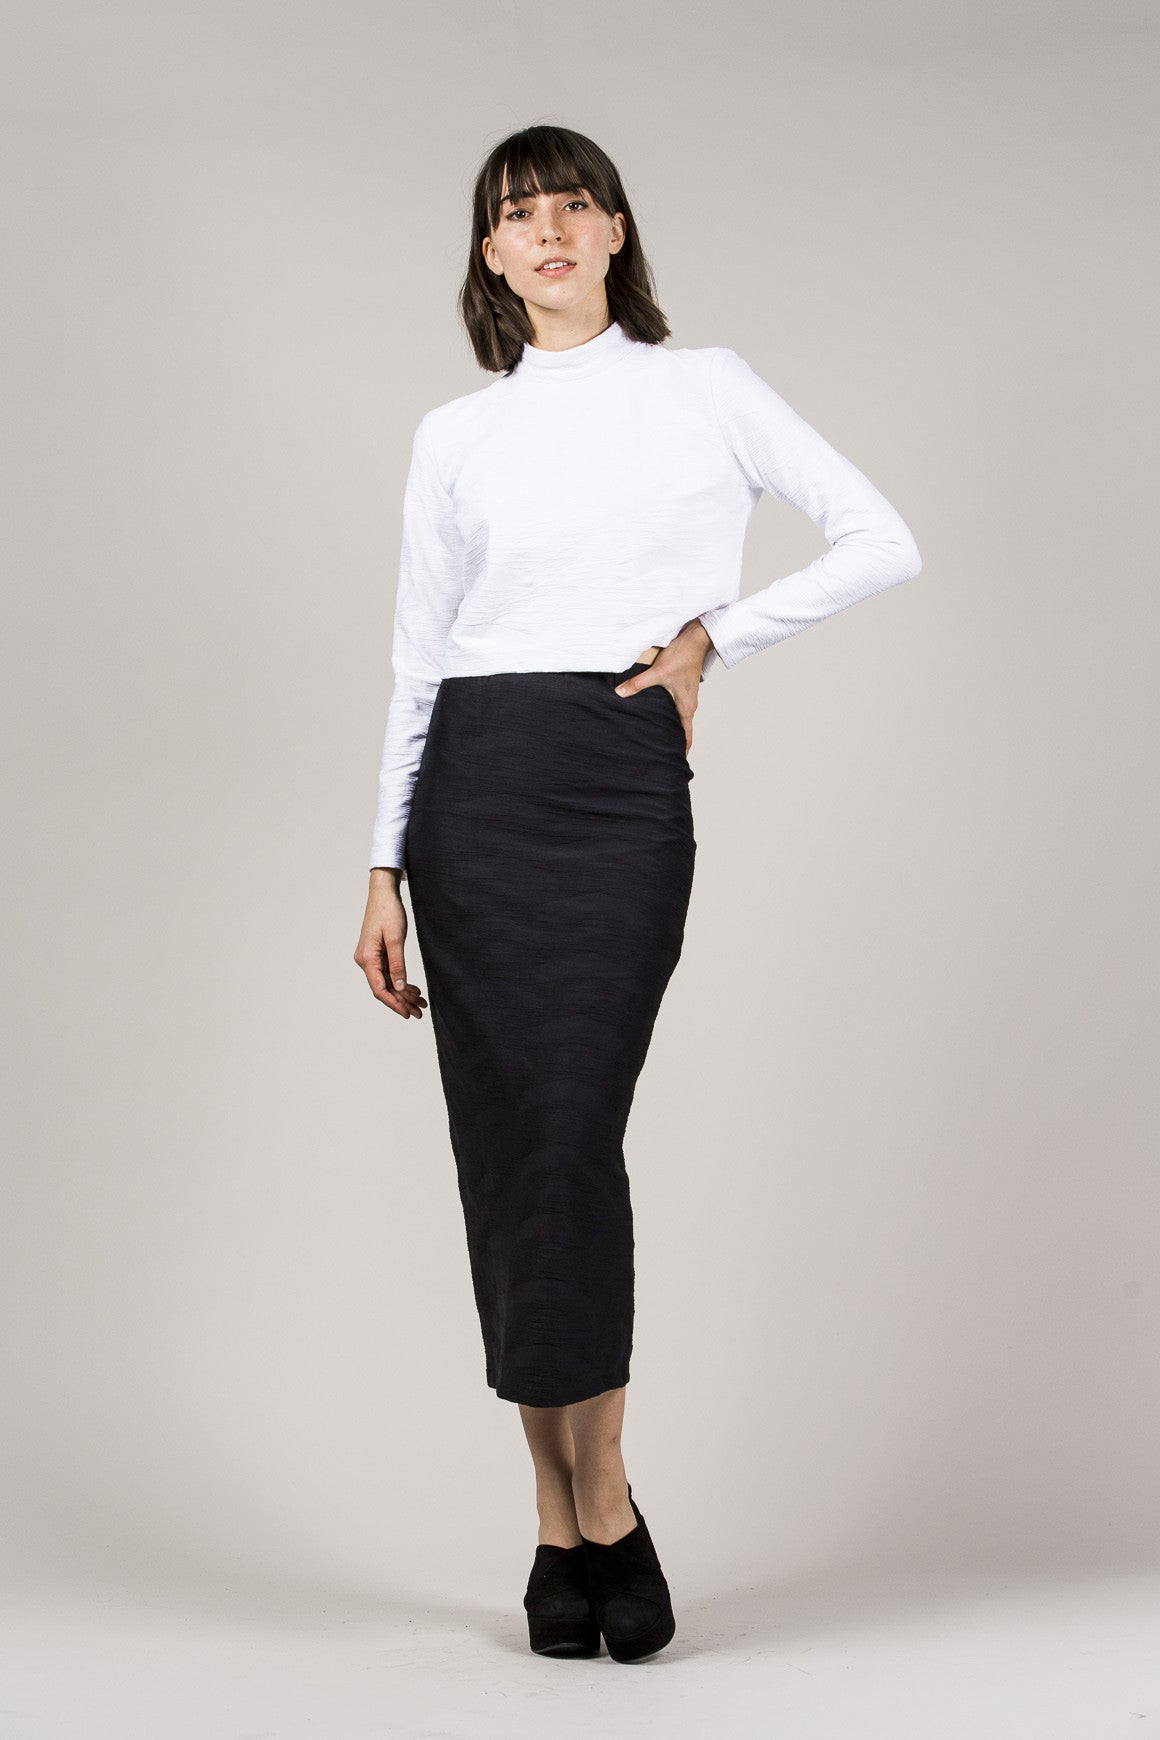 L/S Mock Neck Top, White by Suzanne Rae @ Kick Pleat - 1